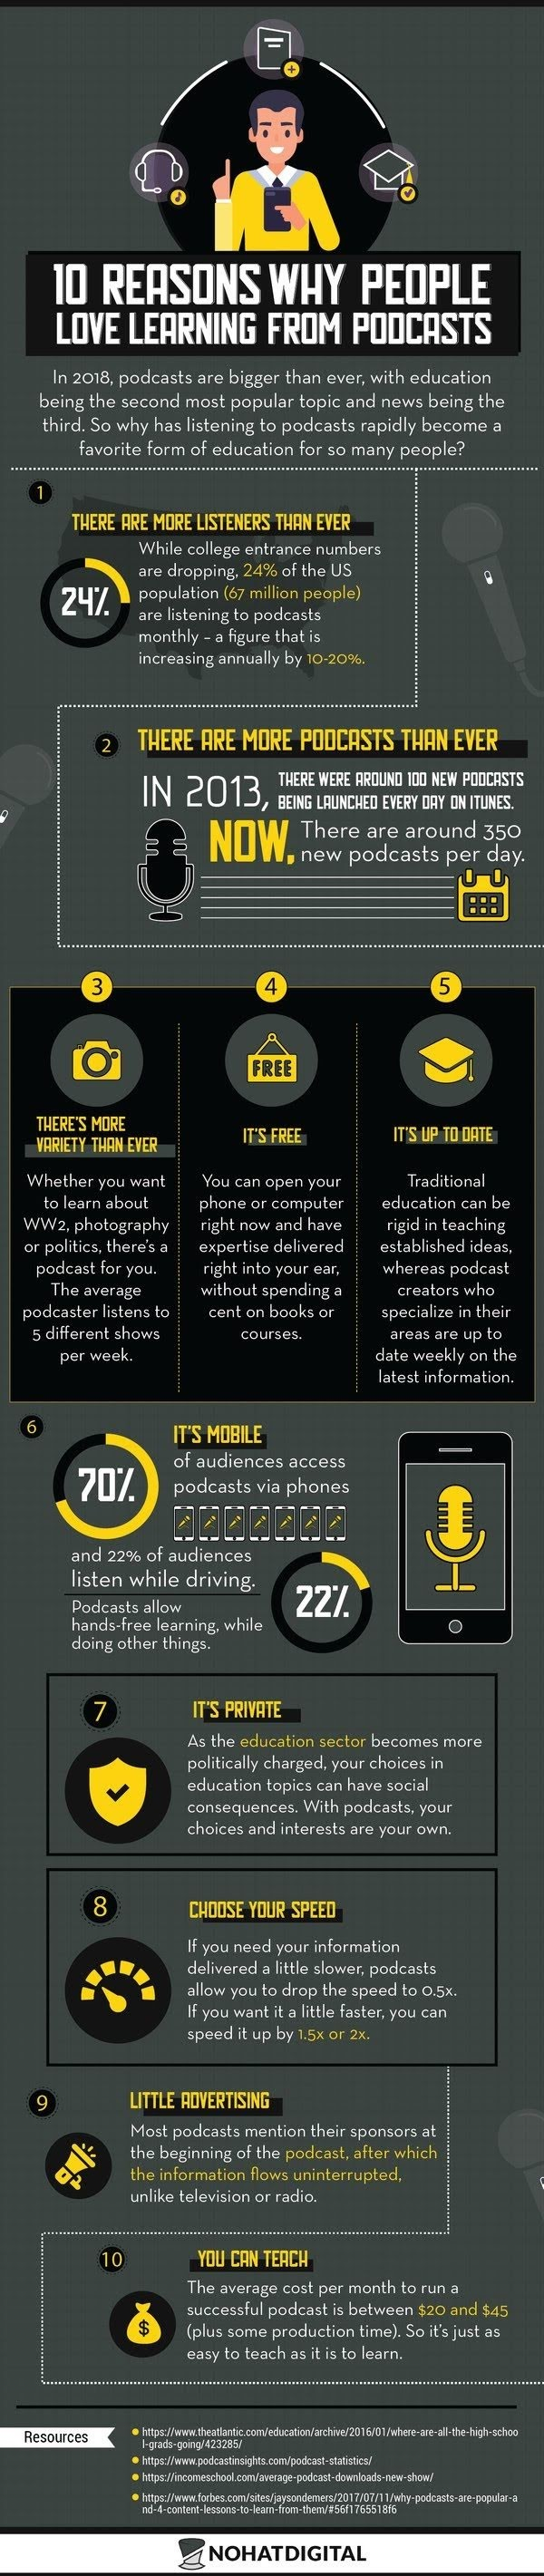 Why Podcast Popularity is Increasing Day-by-Day #infographic